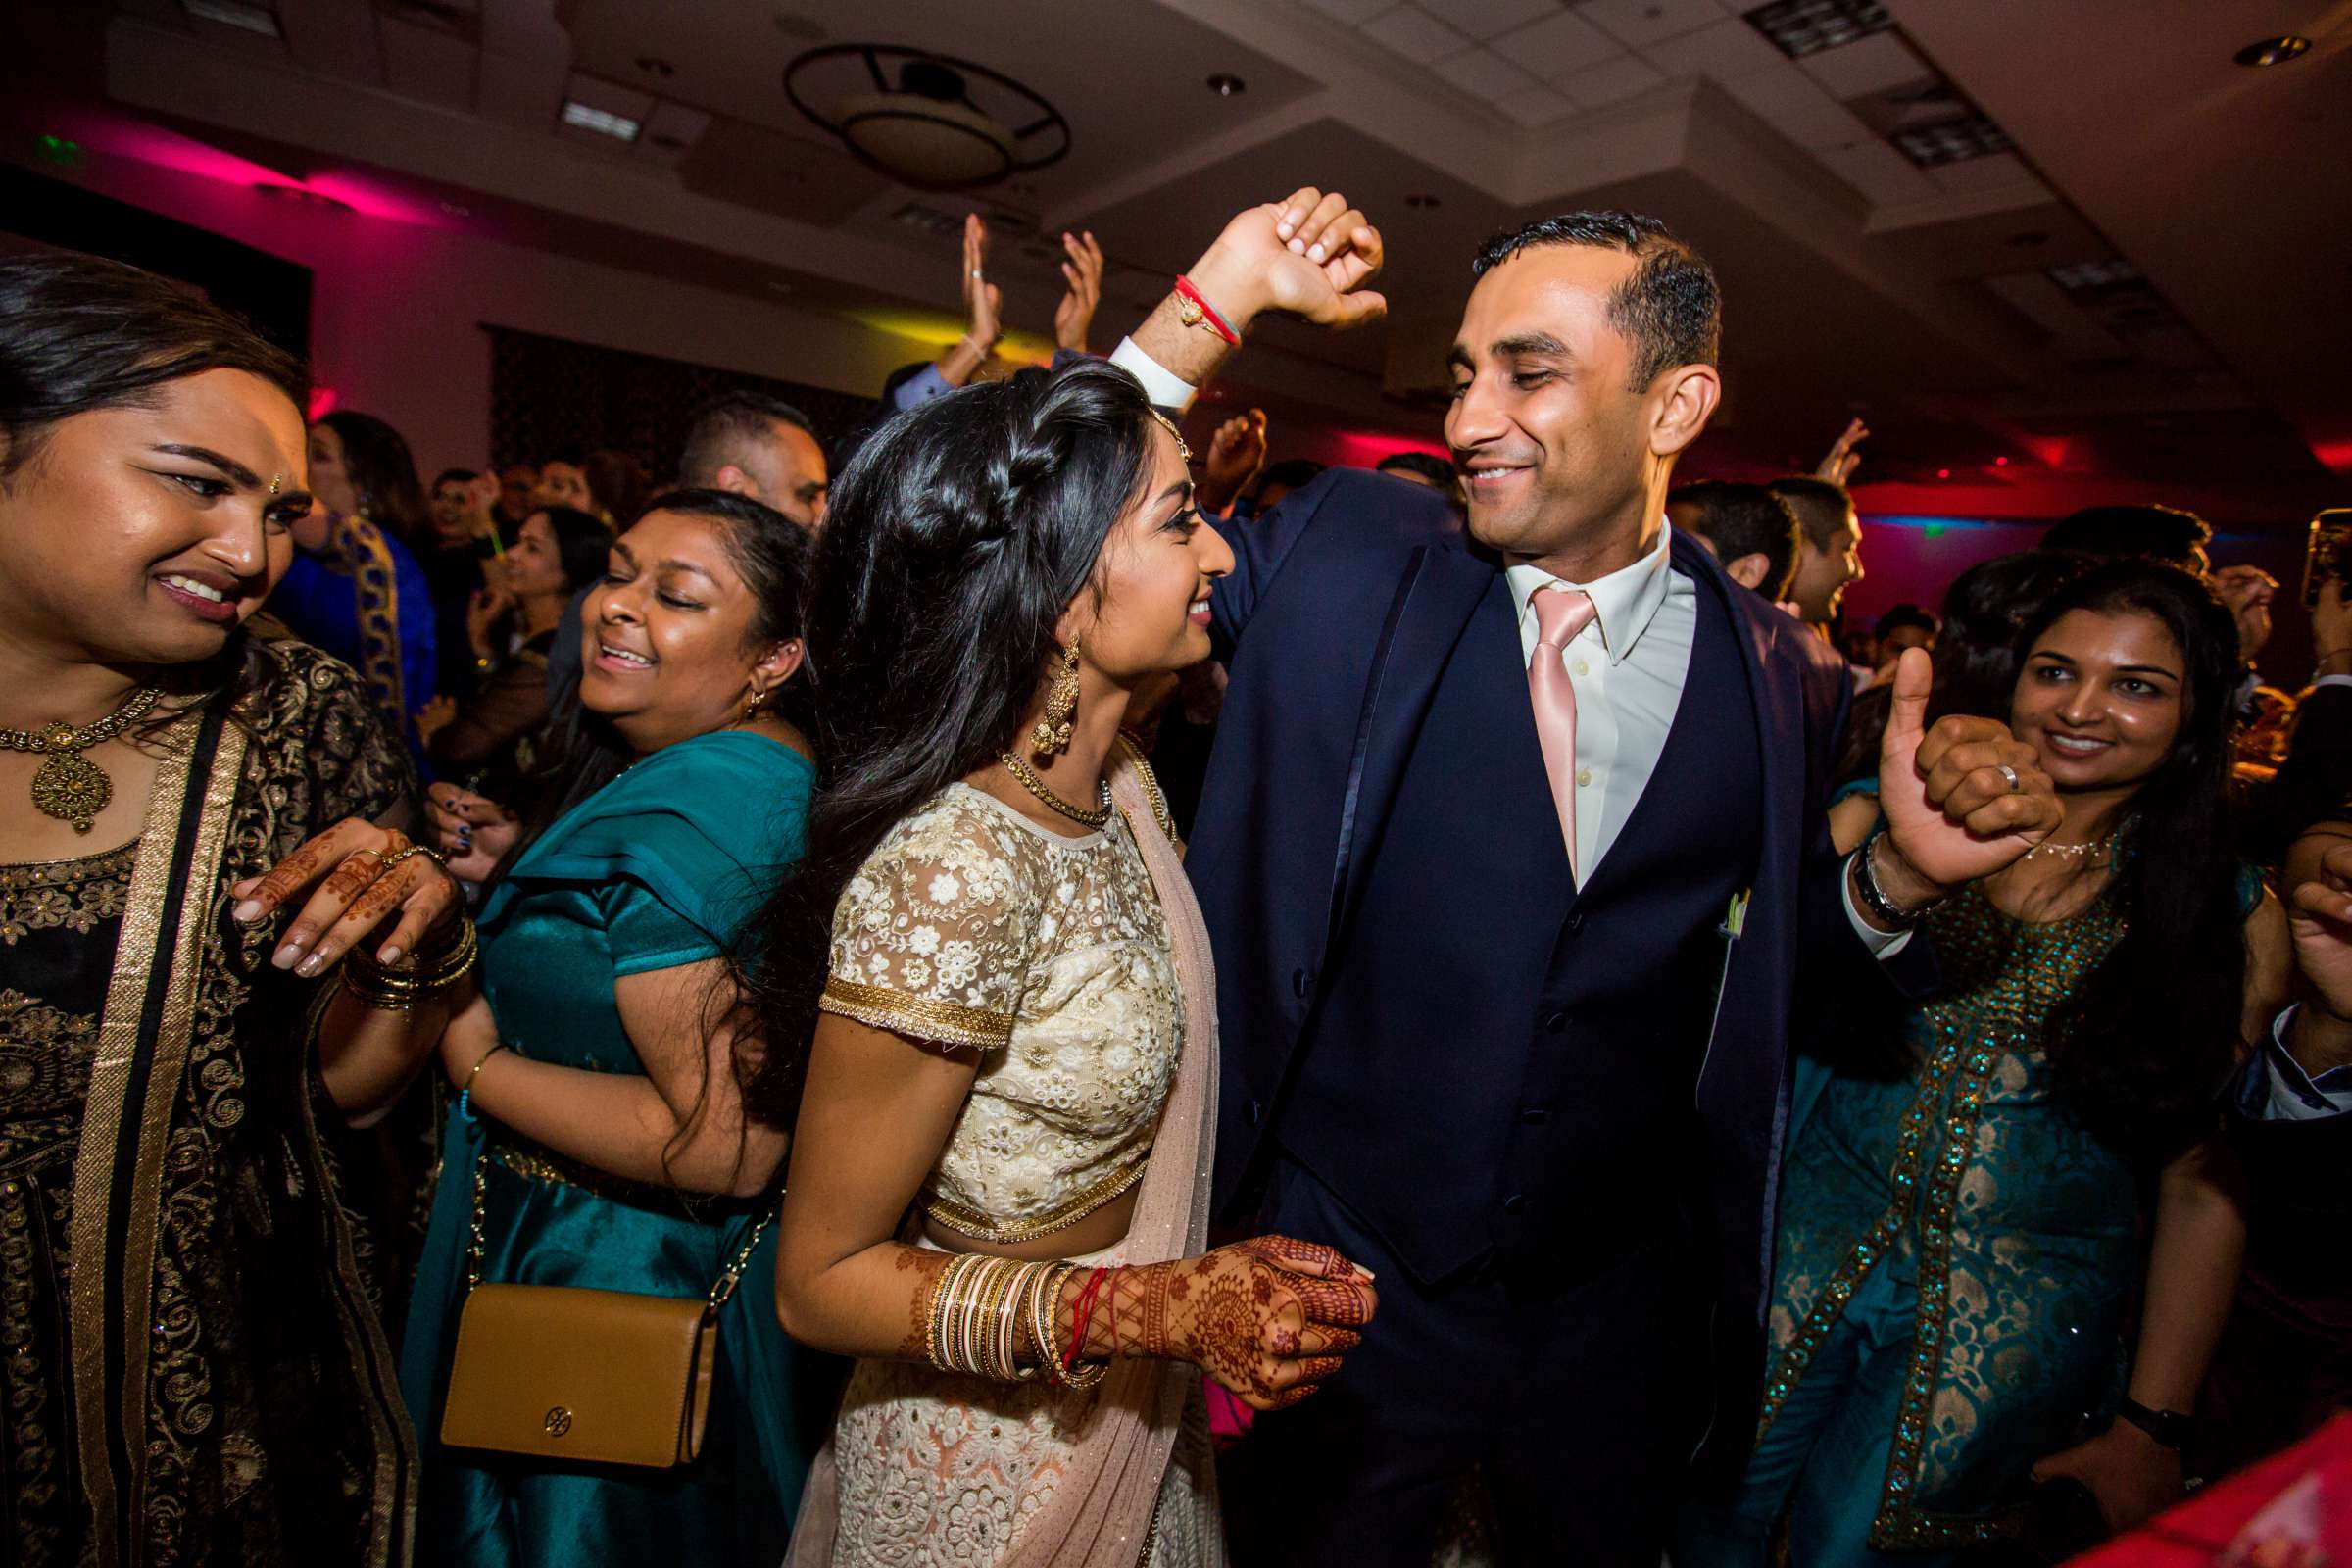 The Westin Carlsbad Resort and Spa Wedding coordinated by Shilpa Patel Events, Ami and Amit Wedding Photo #252 by True Photography